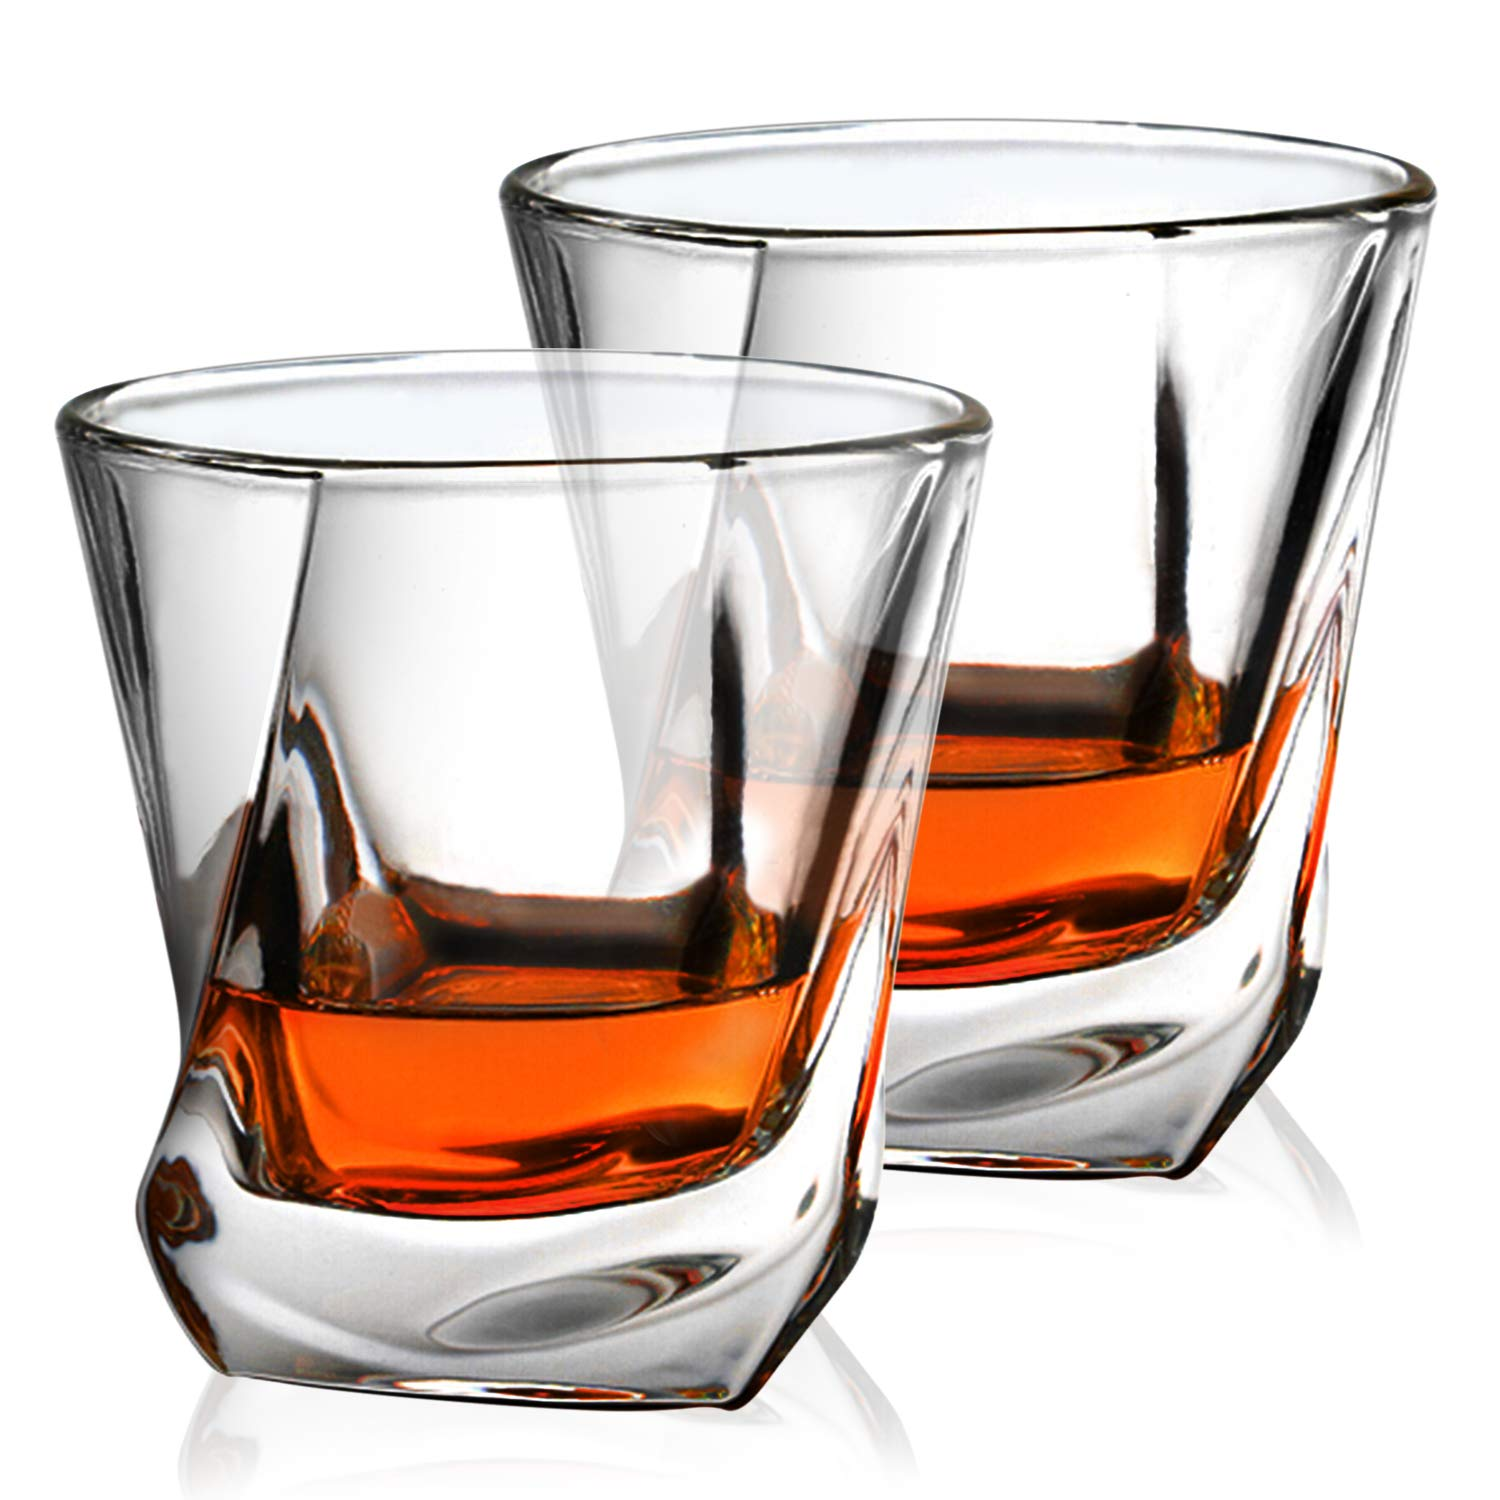 Crystal Whiskey Glasses - Imarku Old Fashioned Glasses for Whiskey, Scotch,Cognac,Bourbon-Liquor Glasses for Men/Women-Set of 2-Luxury Gift Box-Twisted